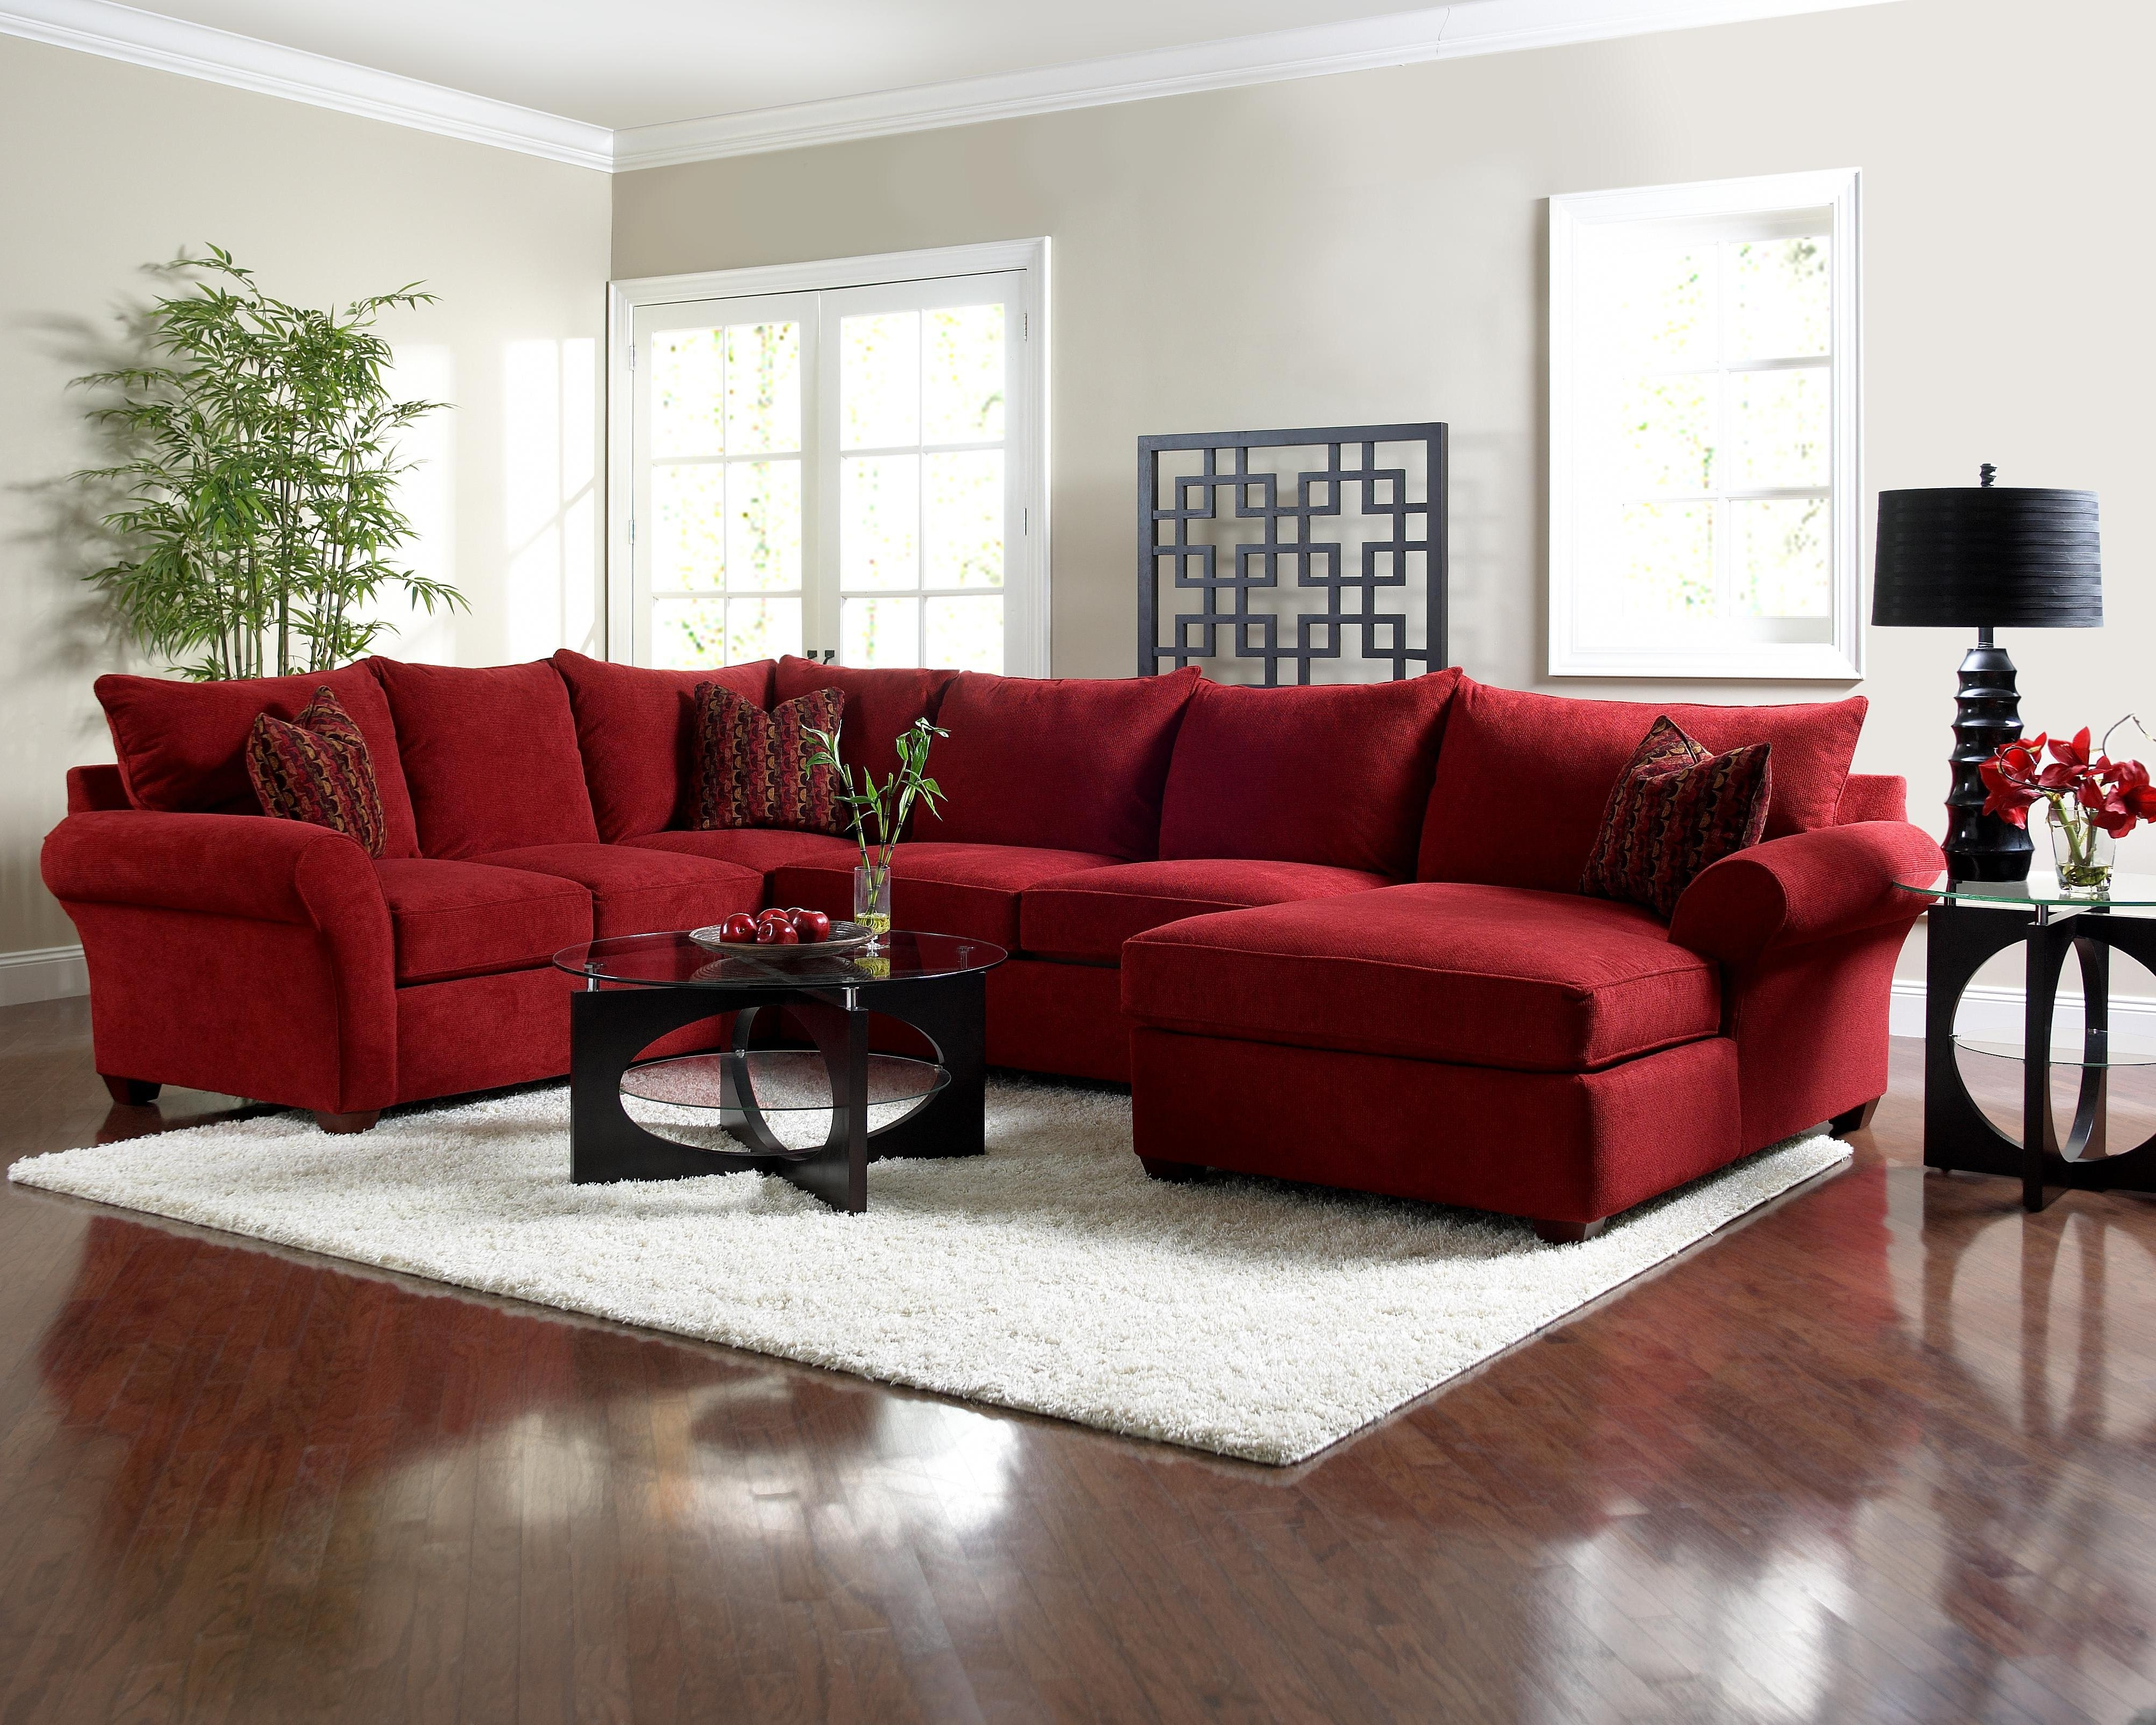 Red Sectional Sofa With Chaise (View 5 of 15)